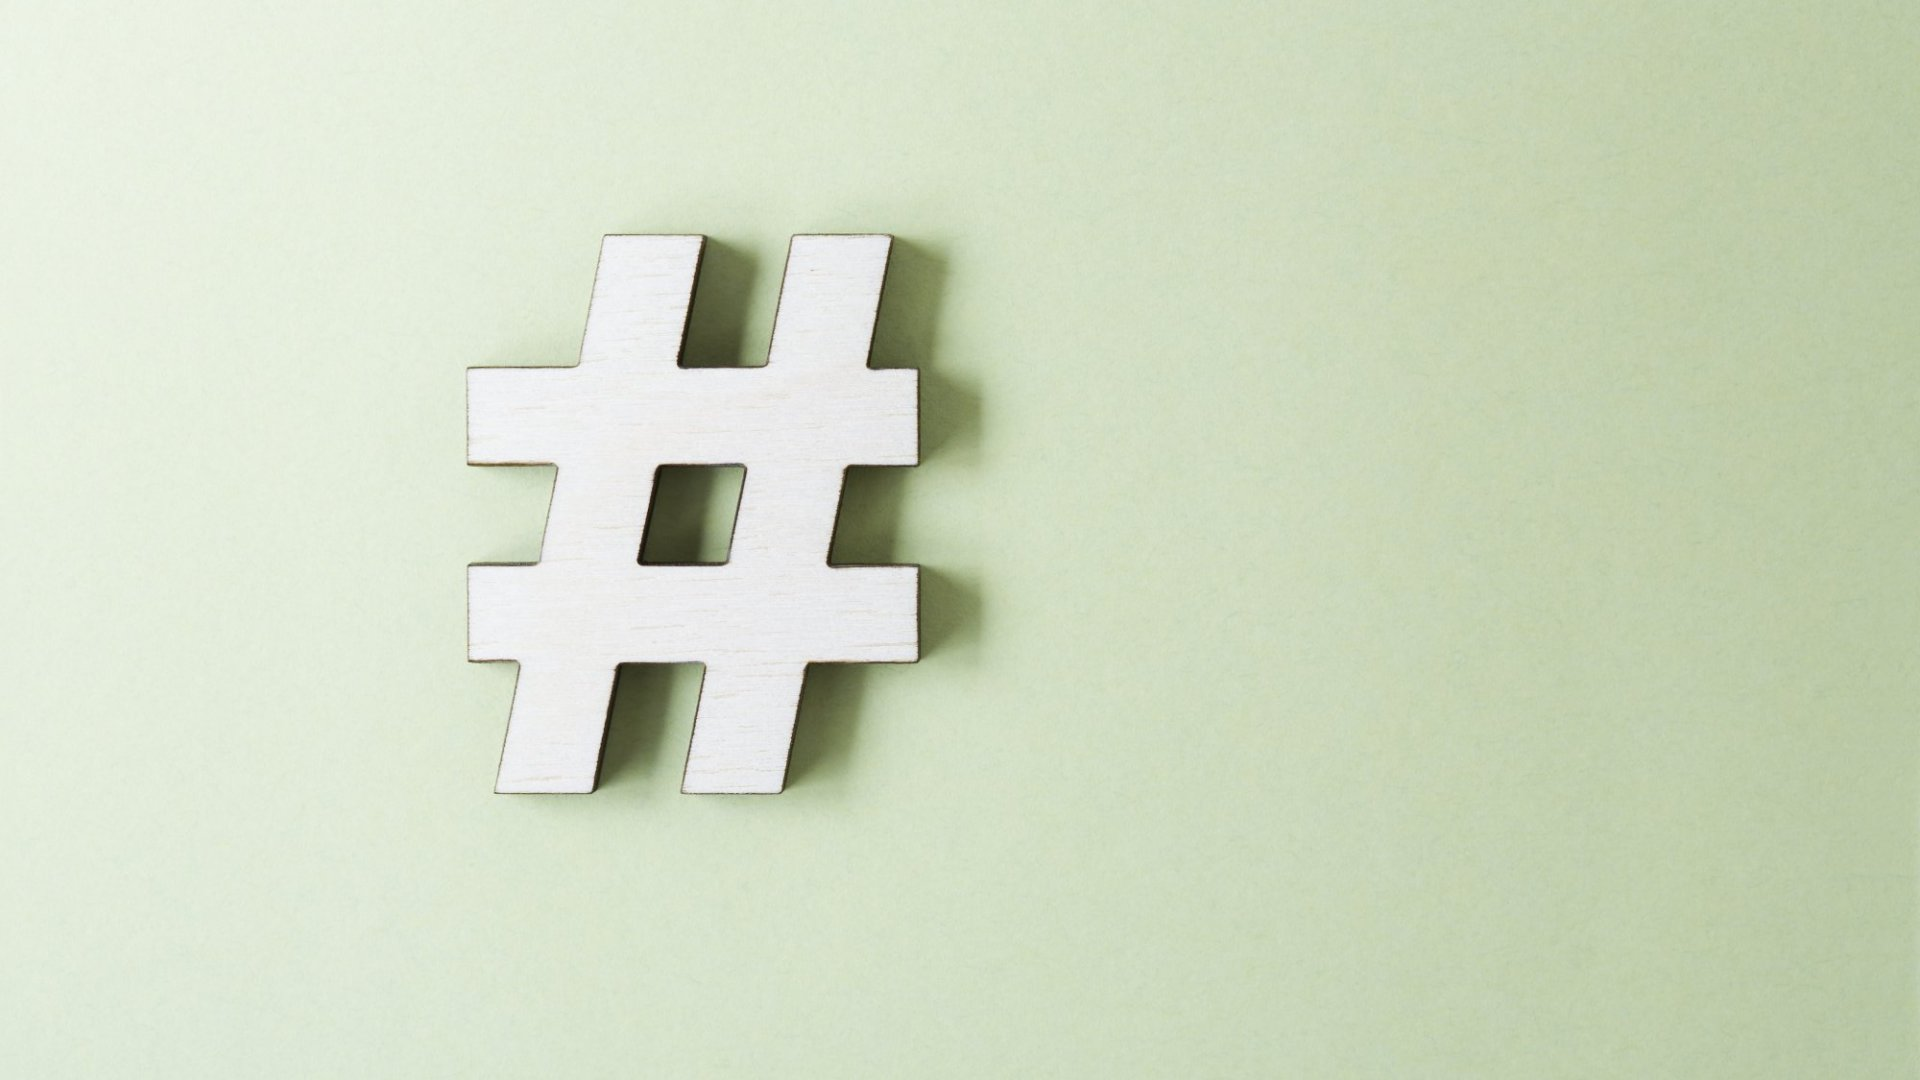 Fired for Tweeting? How Social Media Should Inform Business Decisions